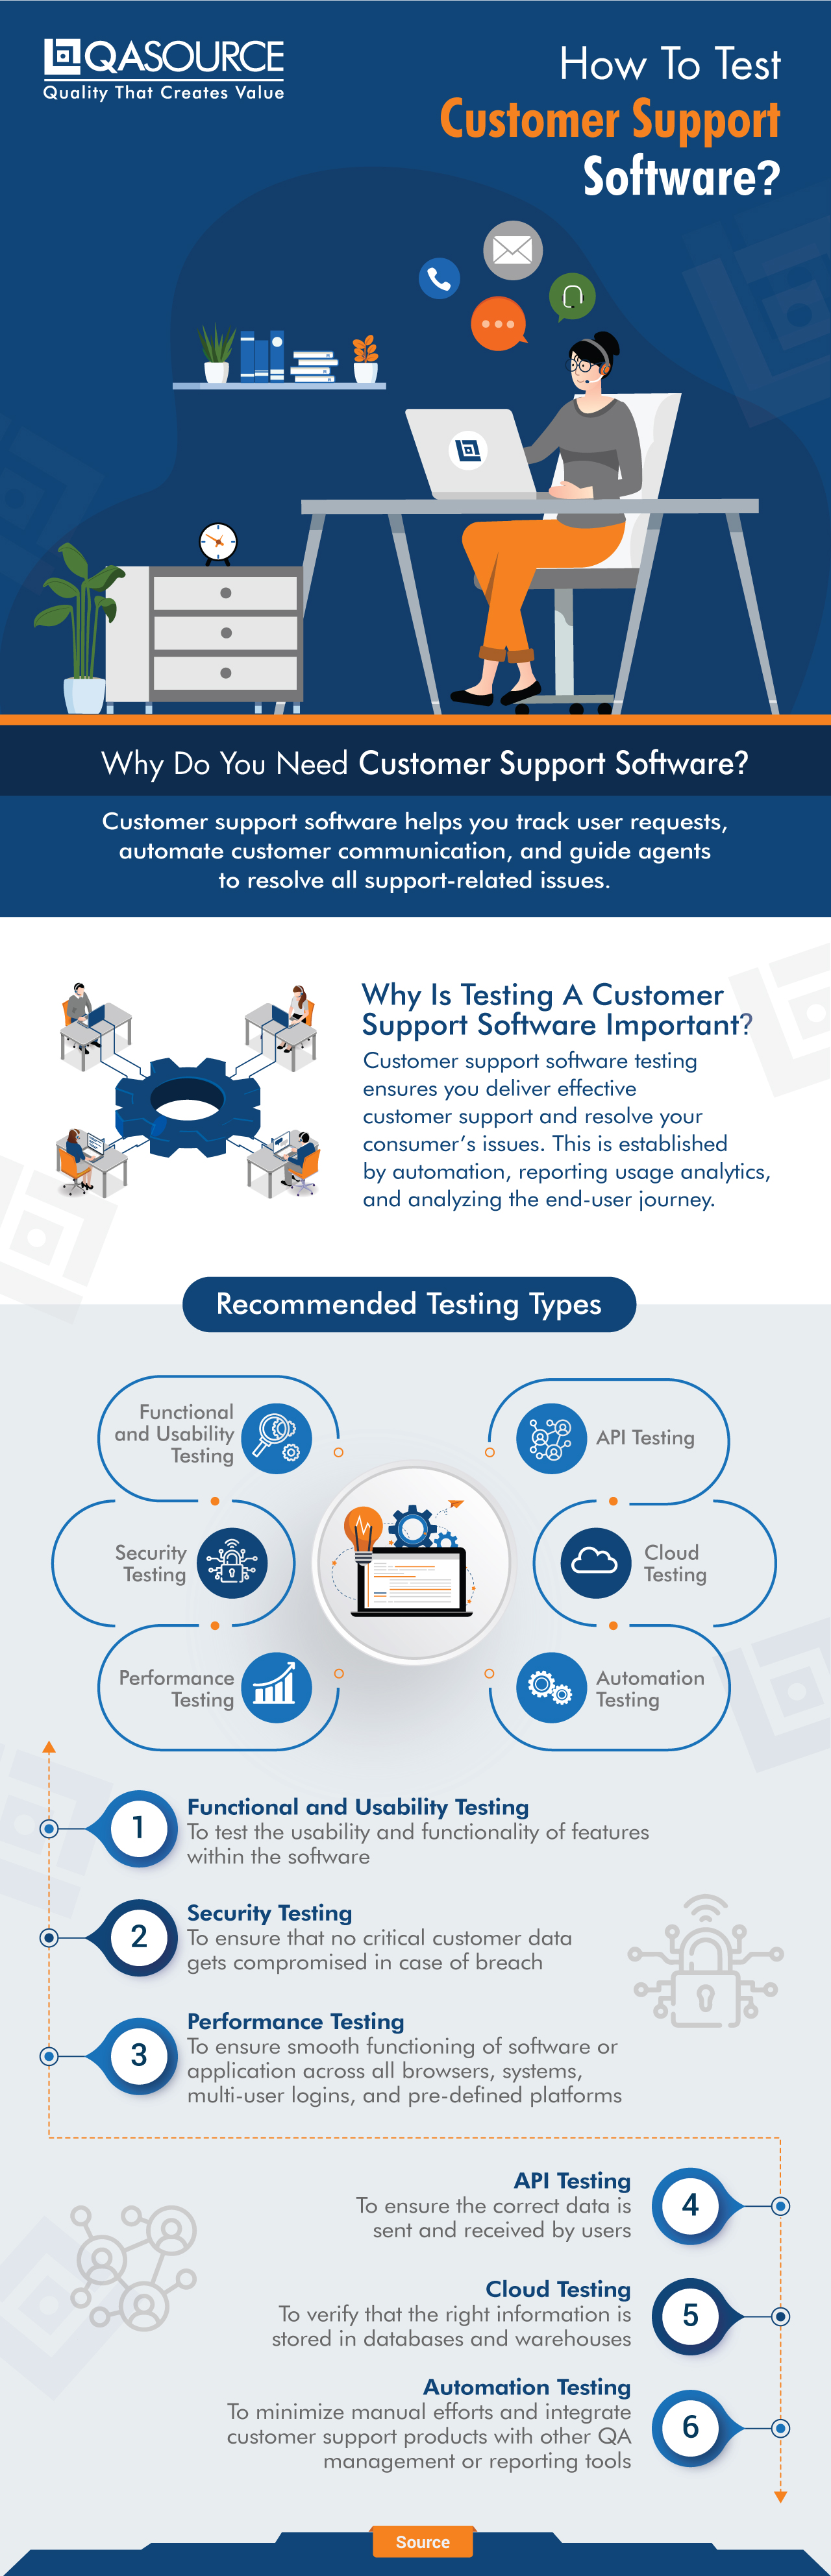 How To Test Customer Support Software?